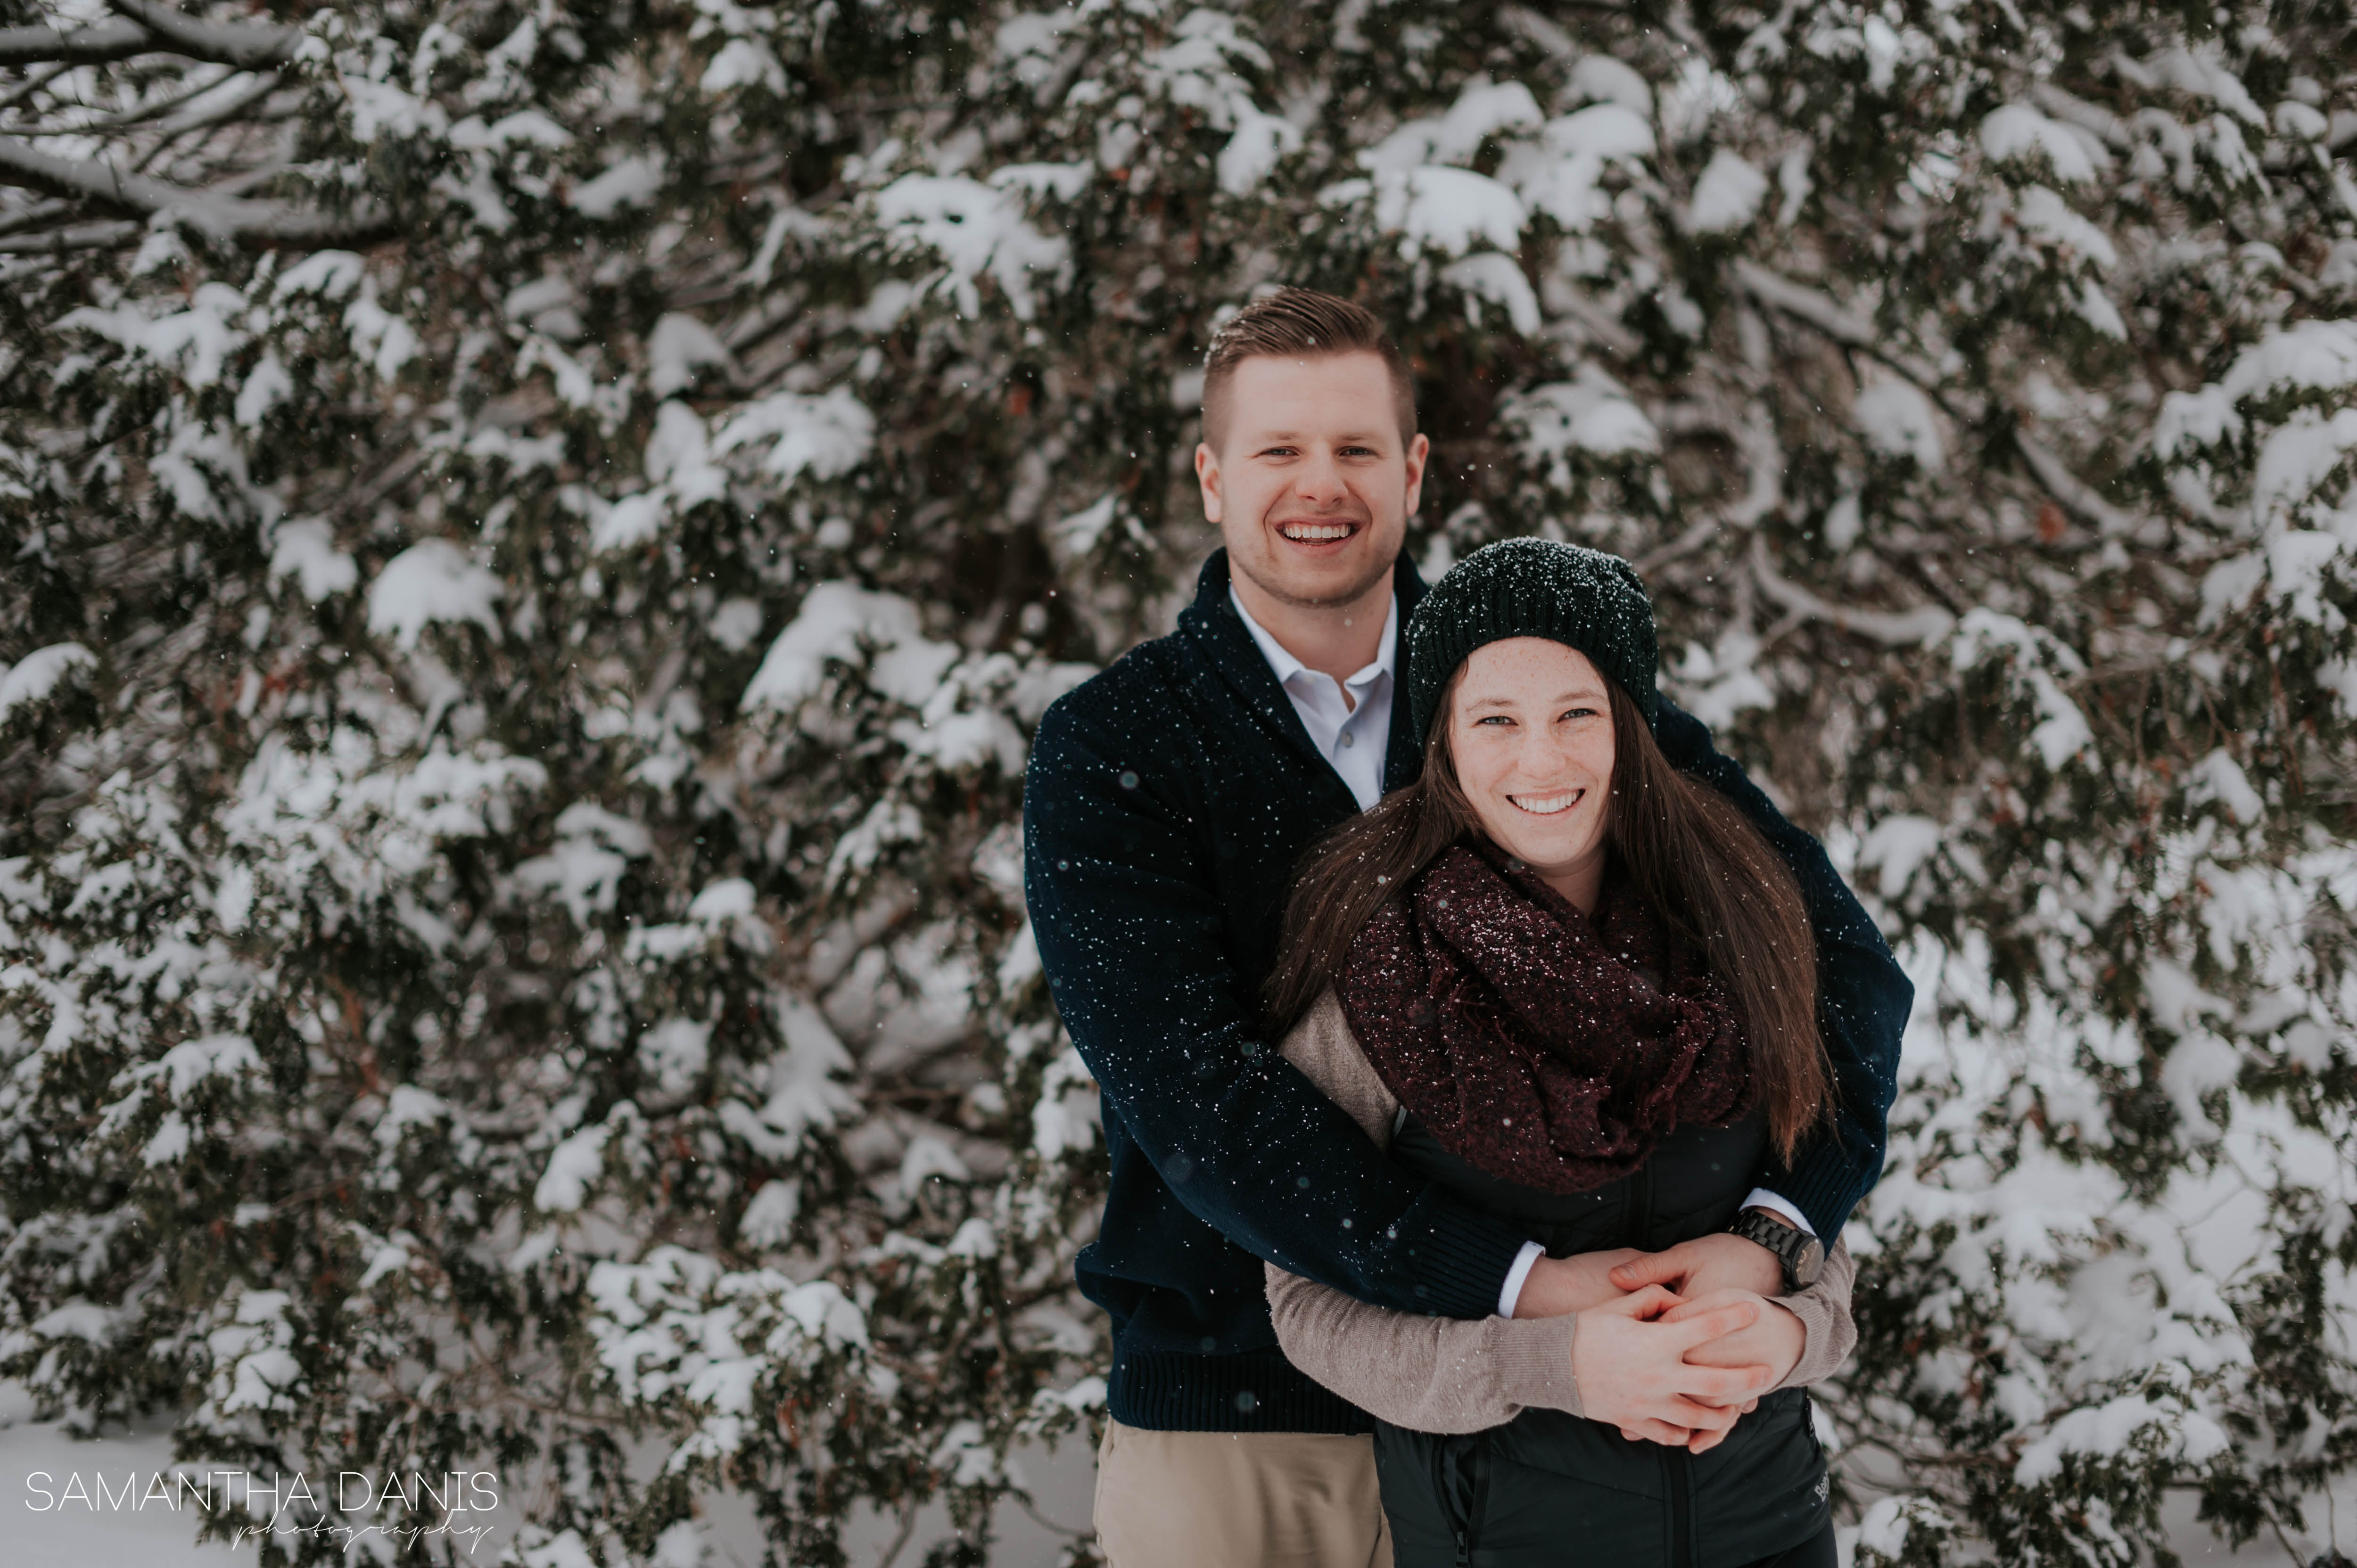 Ottawa Wedding Photographer Samantha Danis Photography Engagement engaged